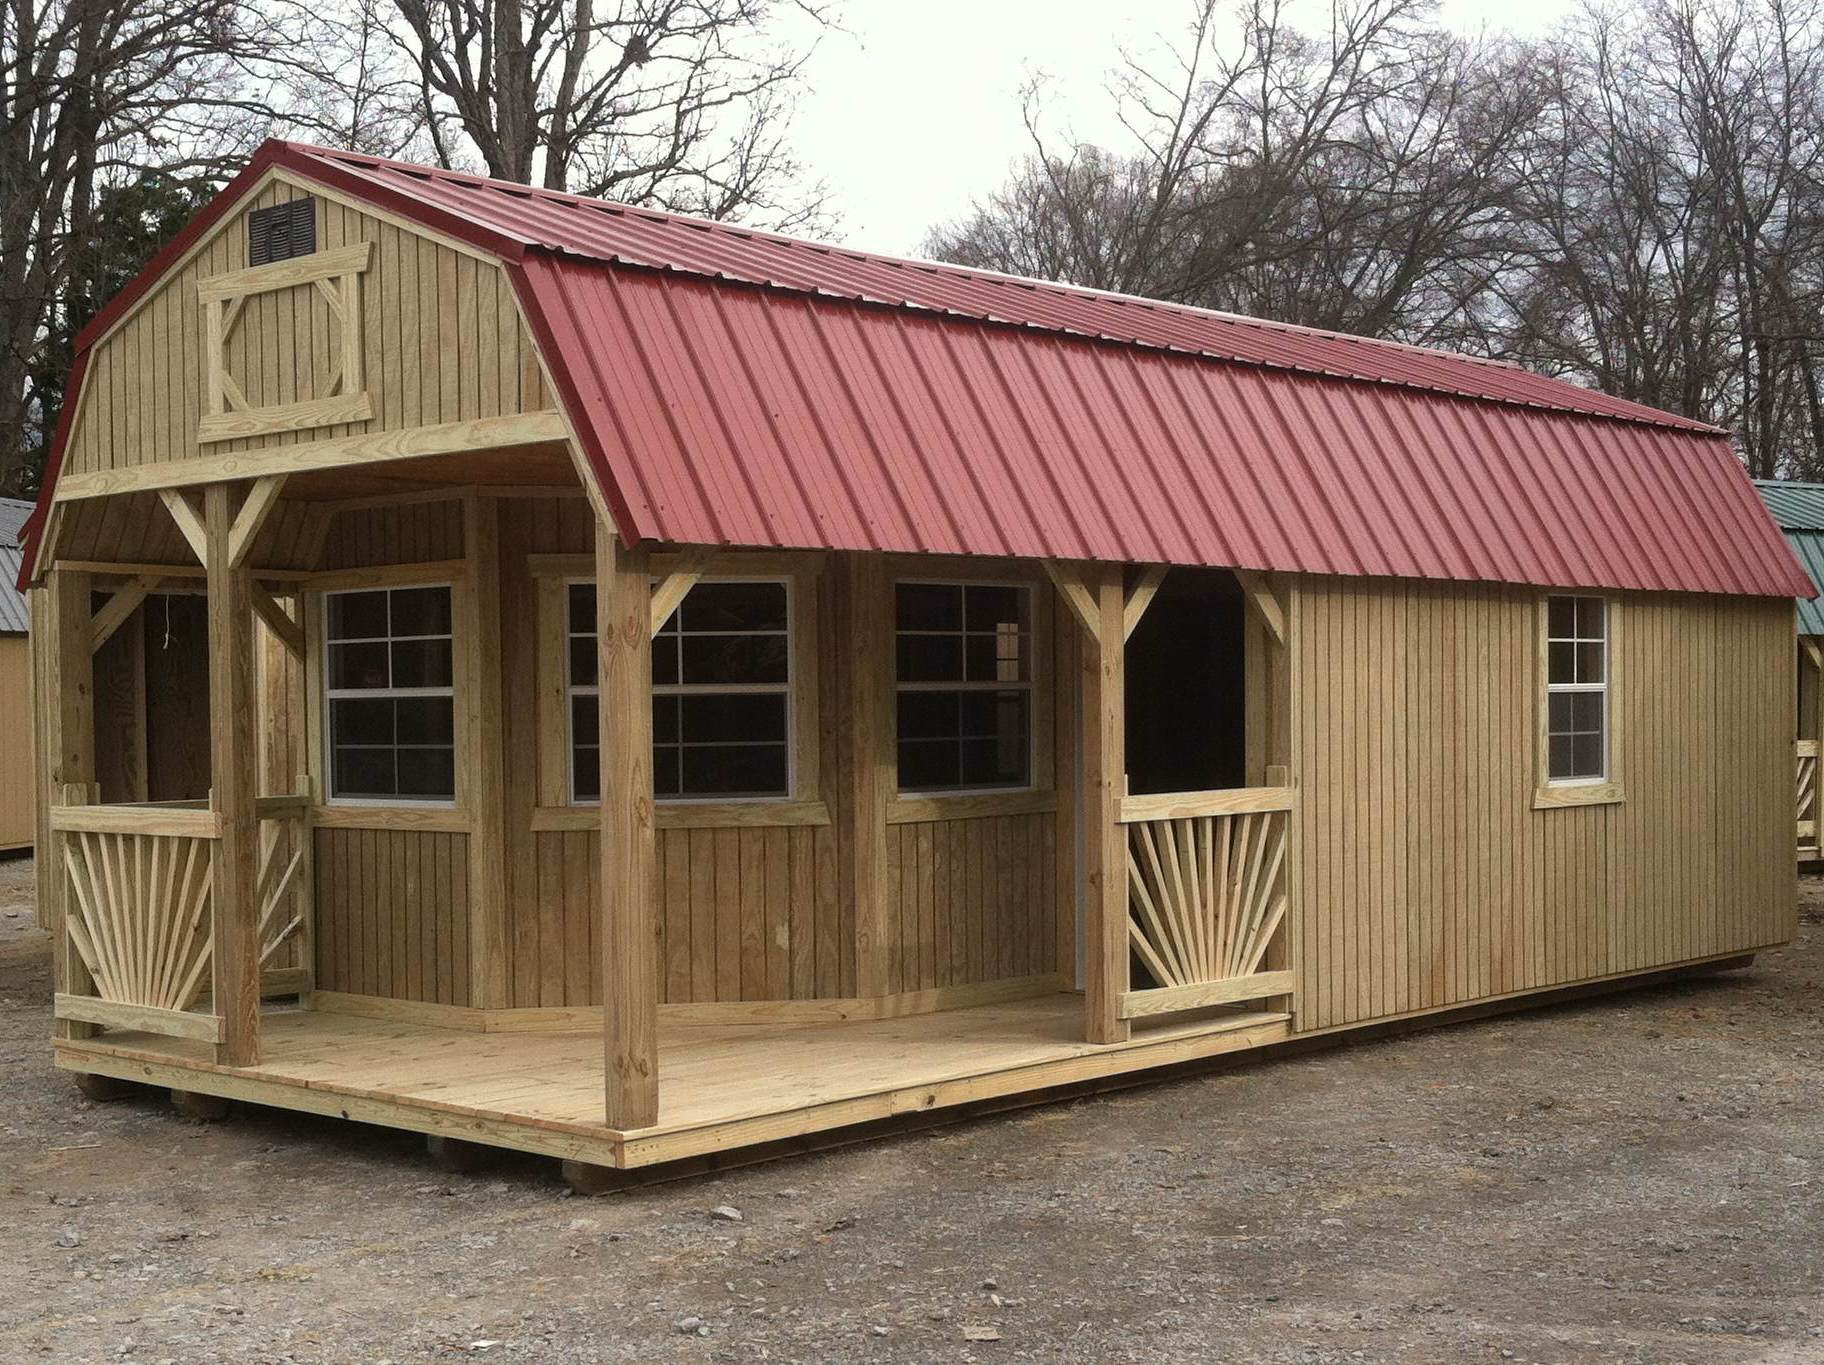 Hickory sheds west cabins cabins n small homes for Small outdoor sheds for sale